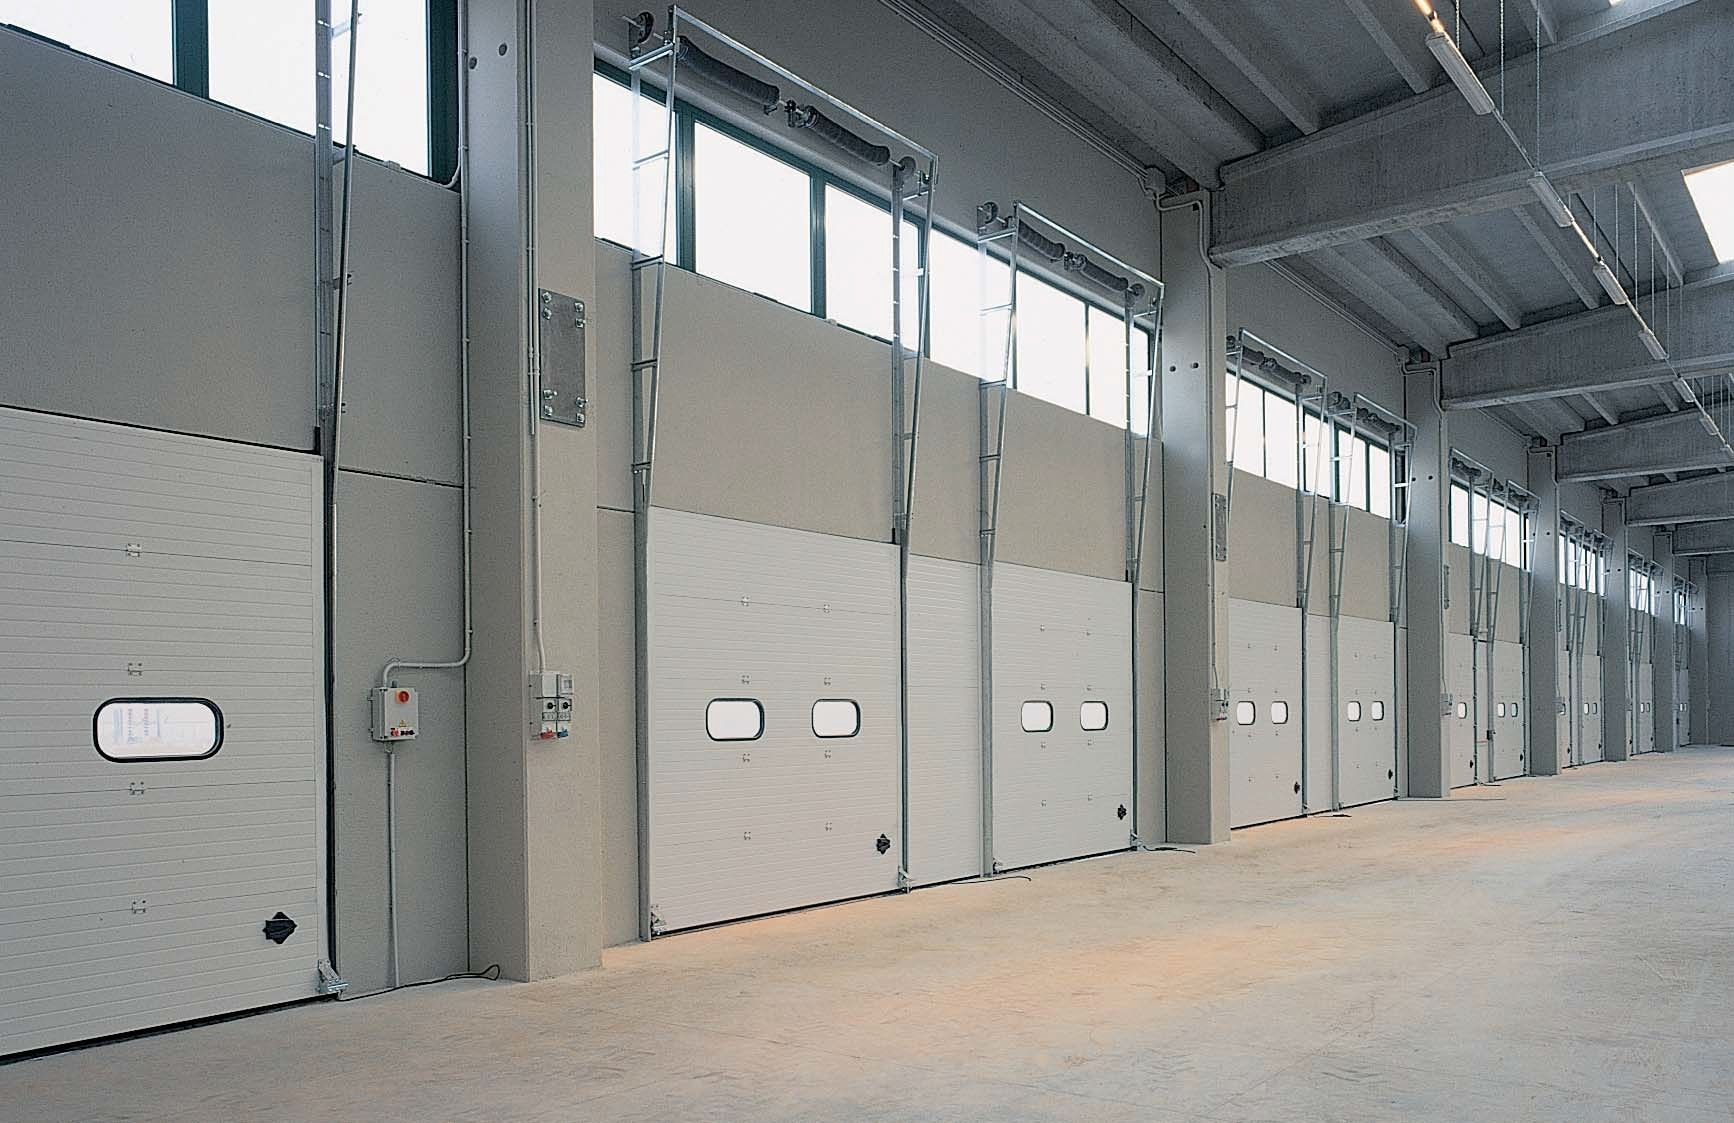 Sectional doors   loading dock   industrial   Dock. Sectional doors   loading dock   industrial   Dock   Breda Sistemi